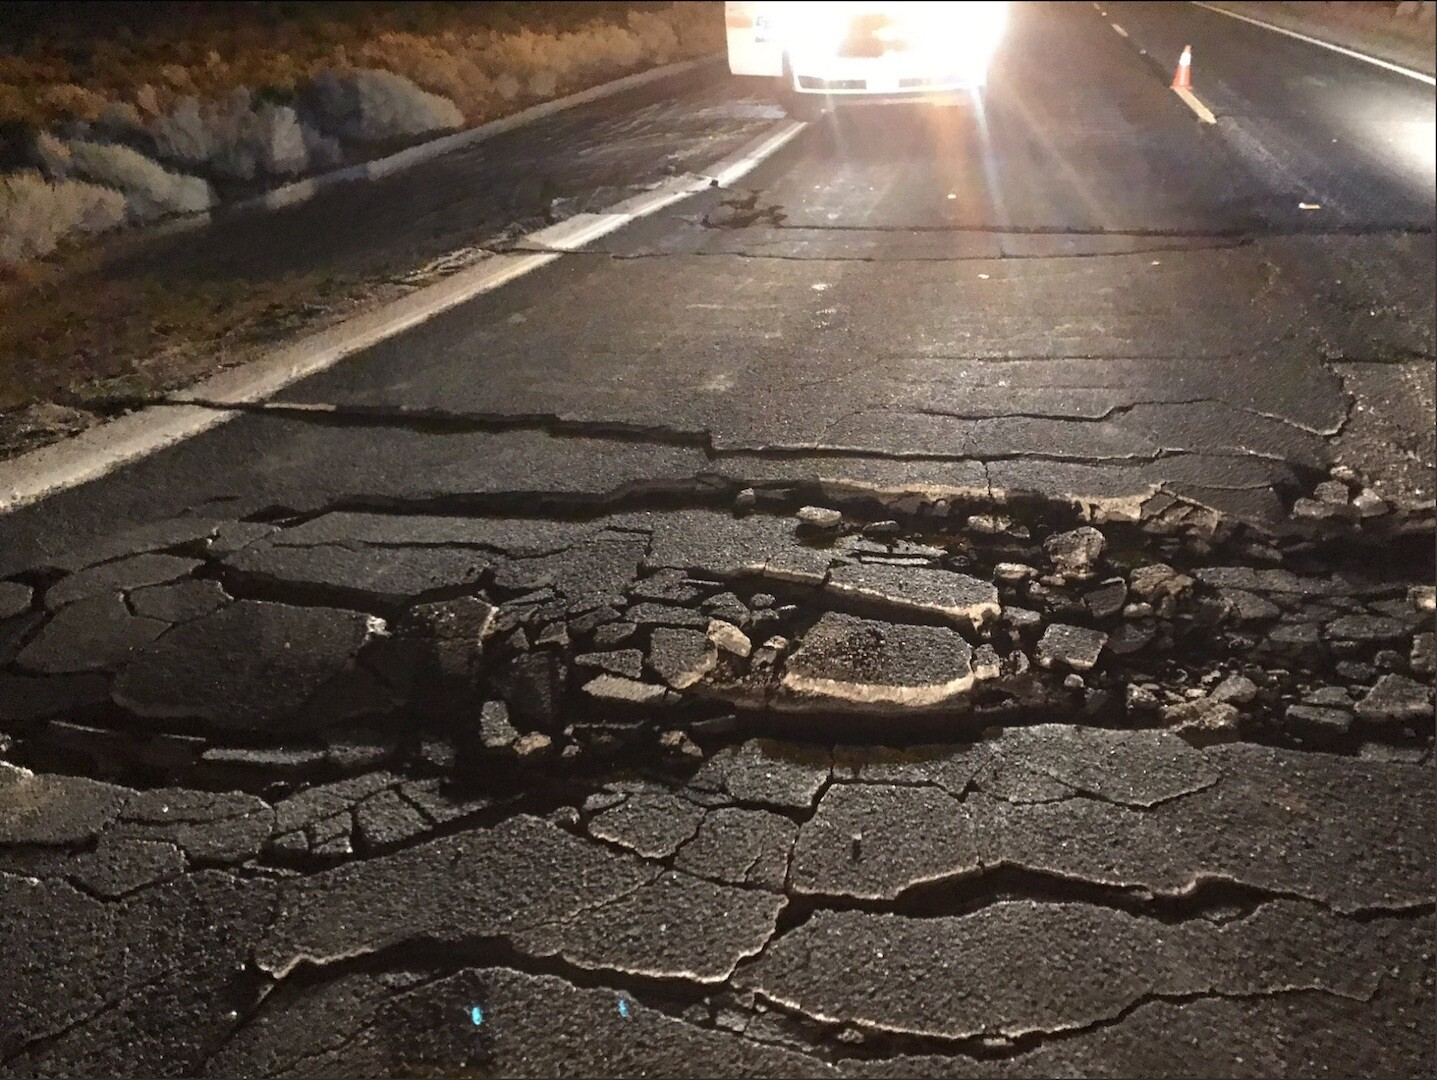 Cracked and damage highway from second earthquake in Ridgecrest, CA on July 5th, 2019. This is the largest and second earthquake to hit the area in one week.